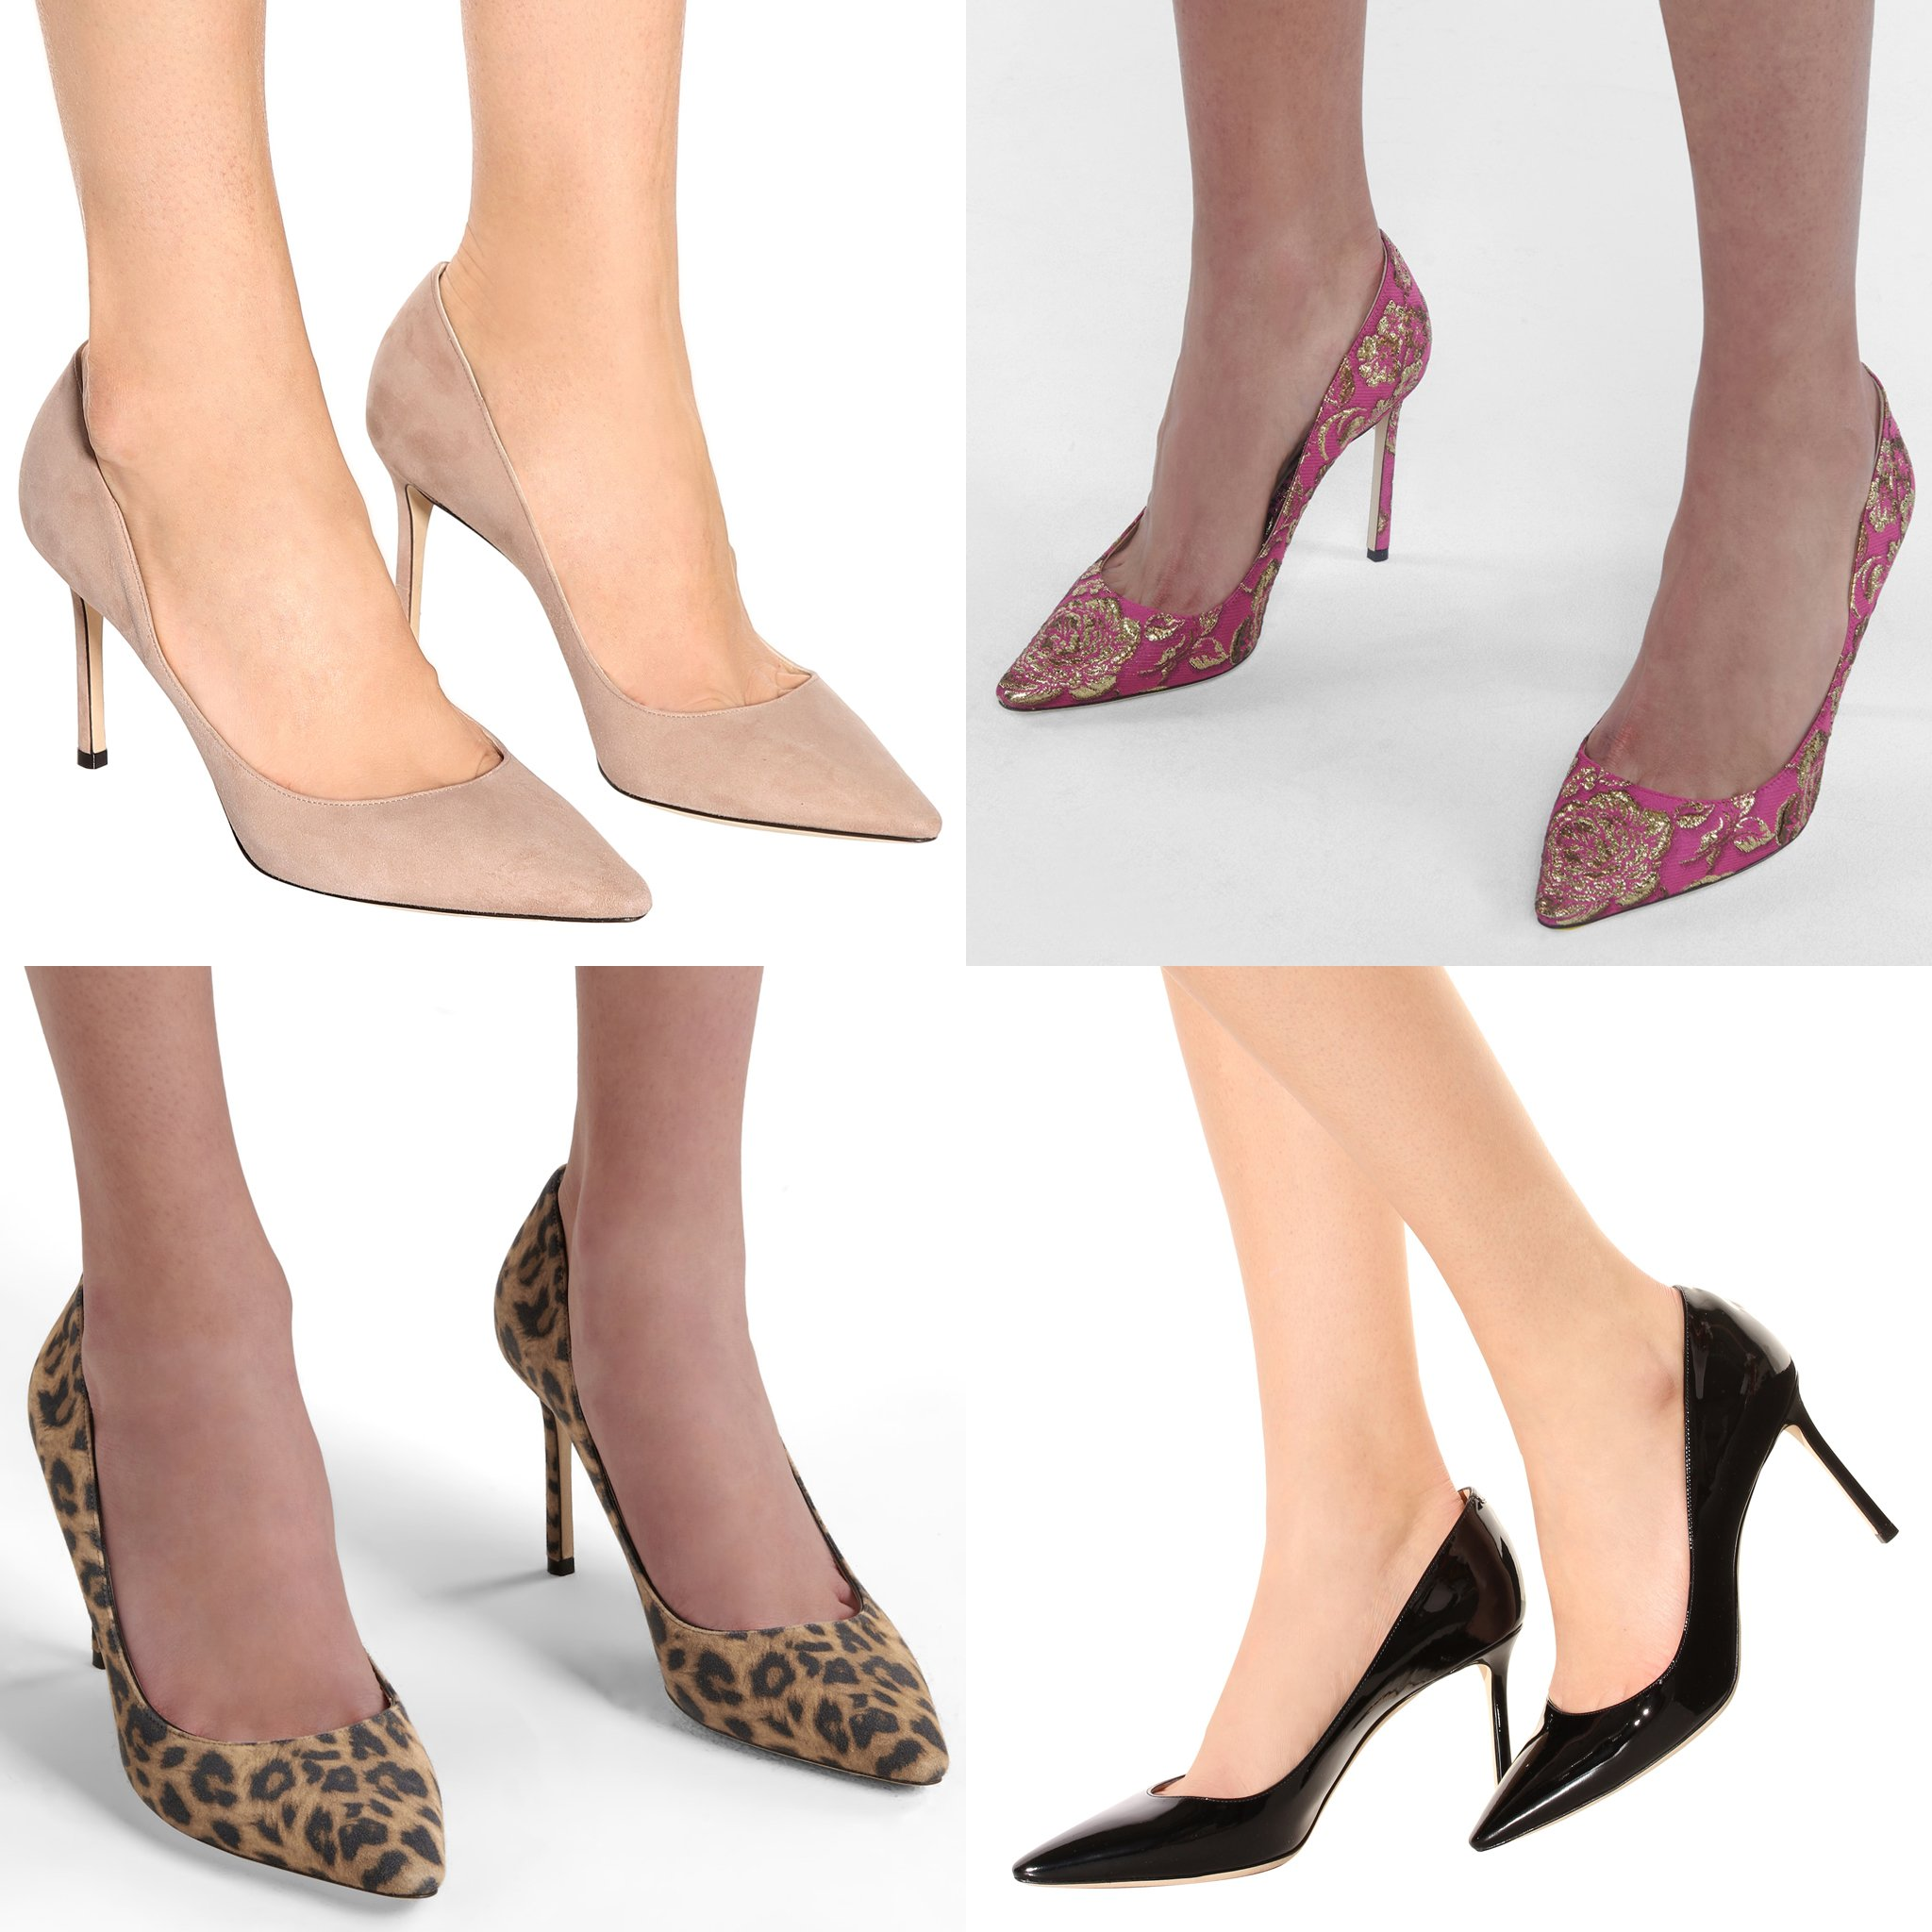 You can also find the Romy pumps in different colors, prints, and materials